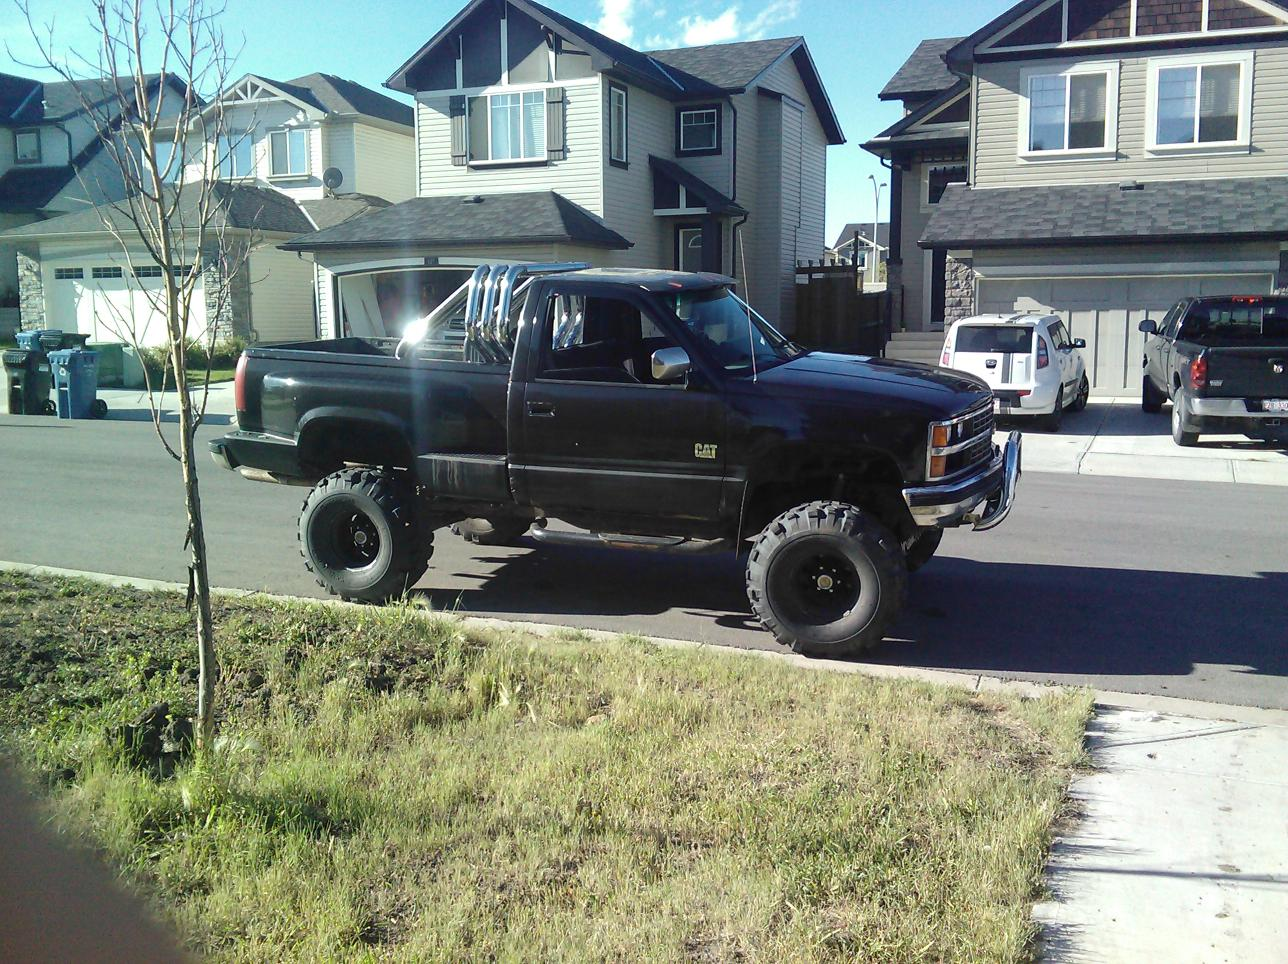 All Chevy 1989 chevy : 1989 Chevy Stepside 4x4: I Have a 1989 Chevy Stepdside 4x4 . the ...